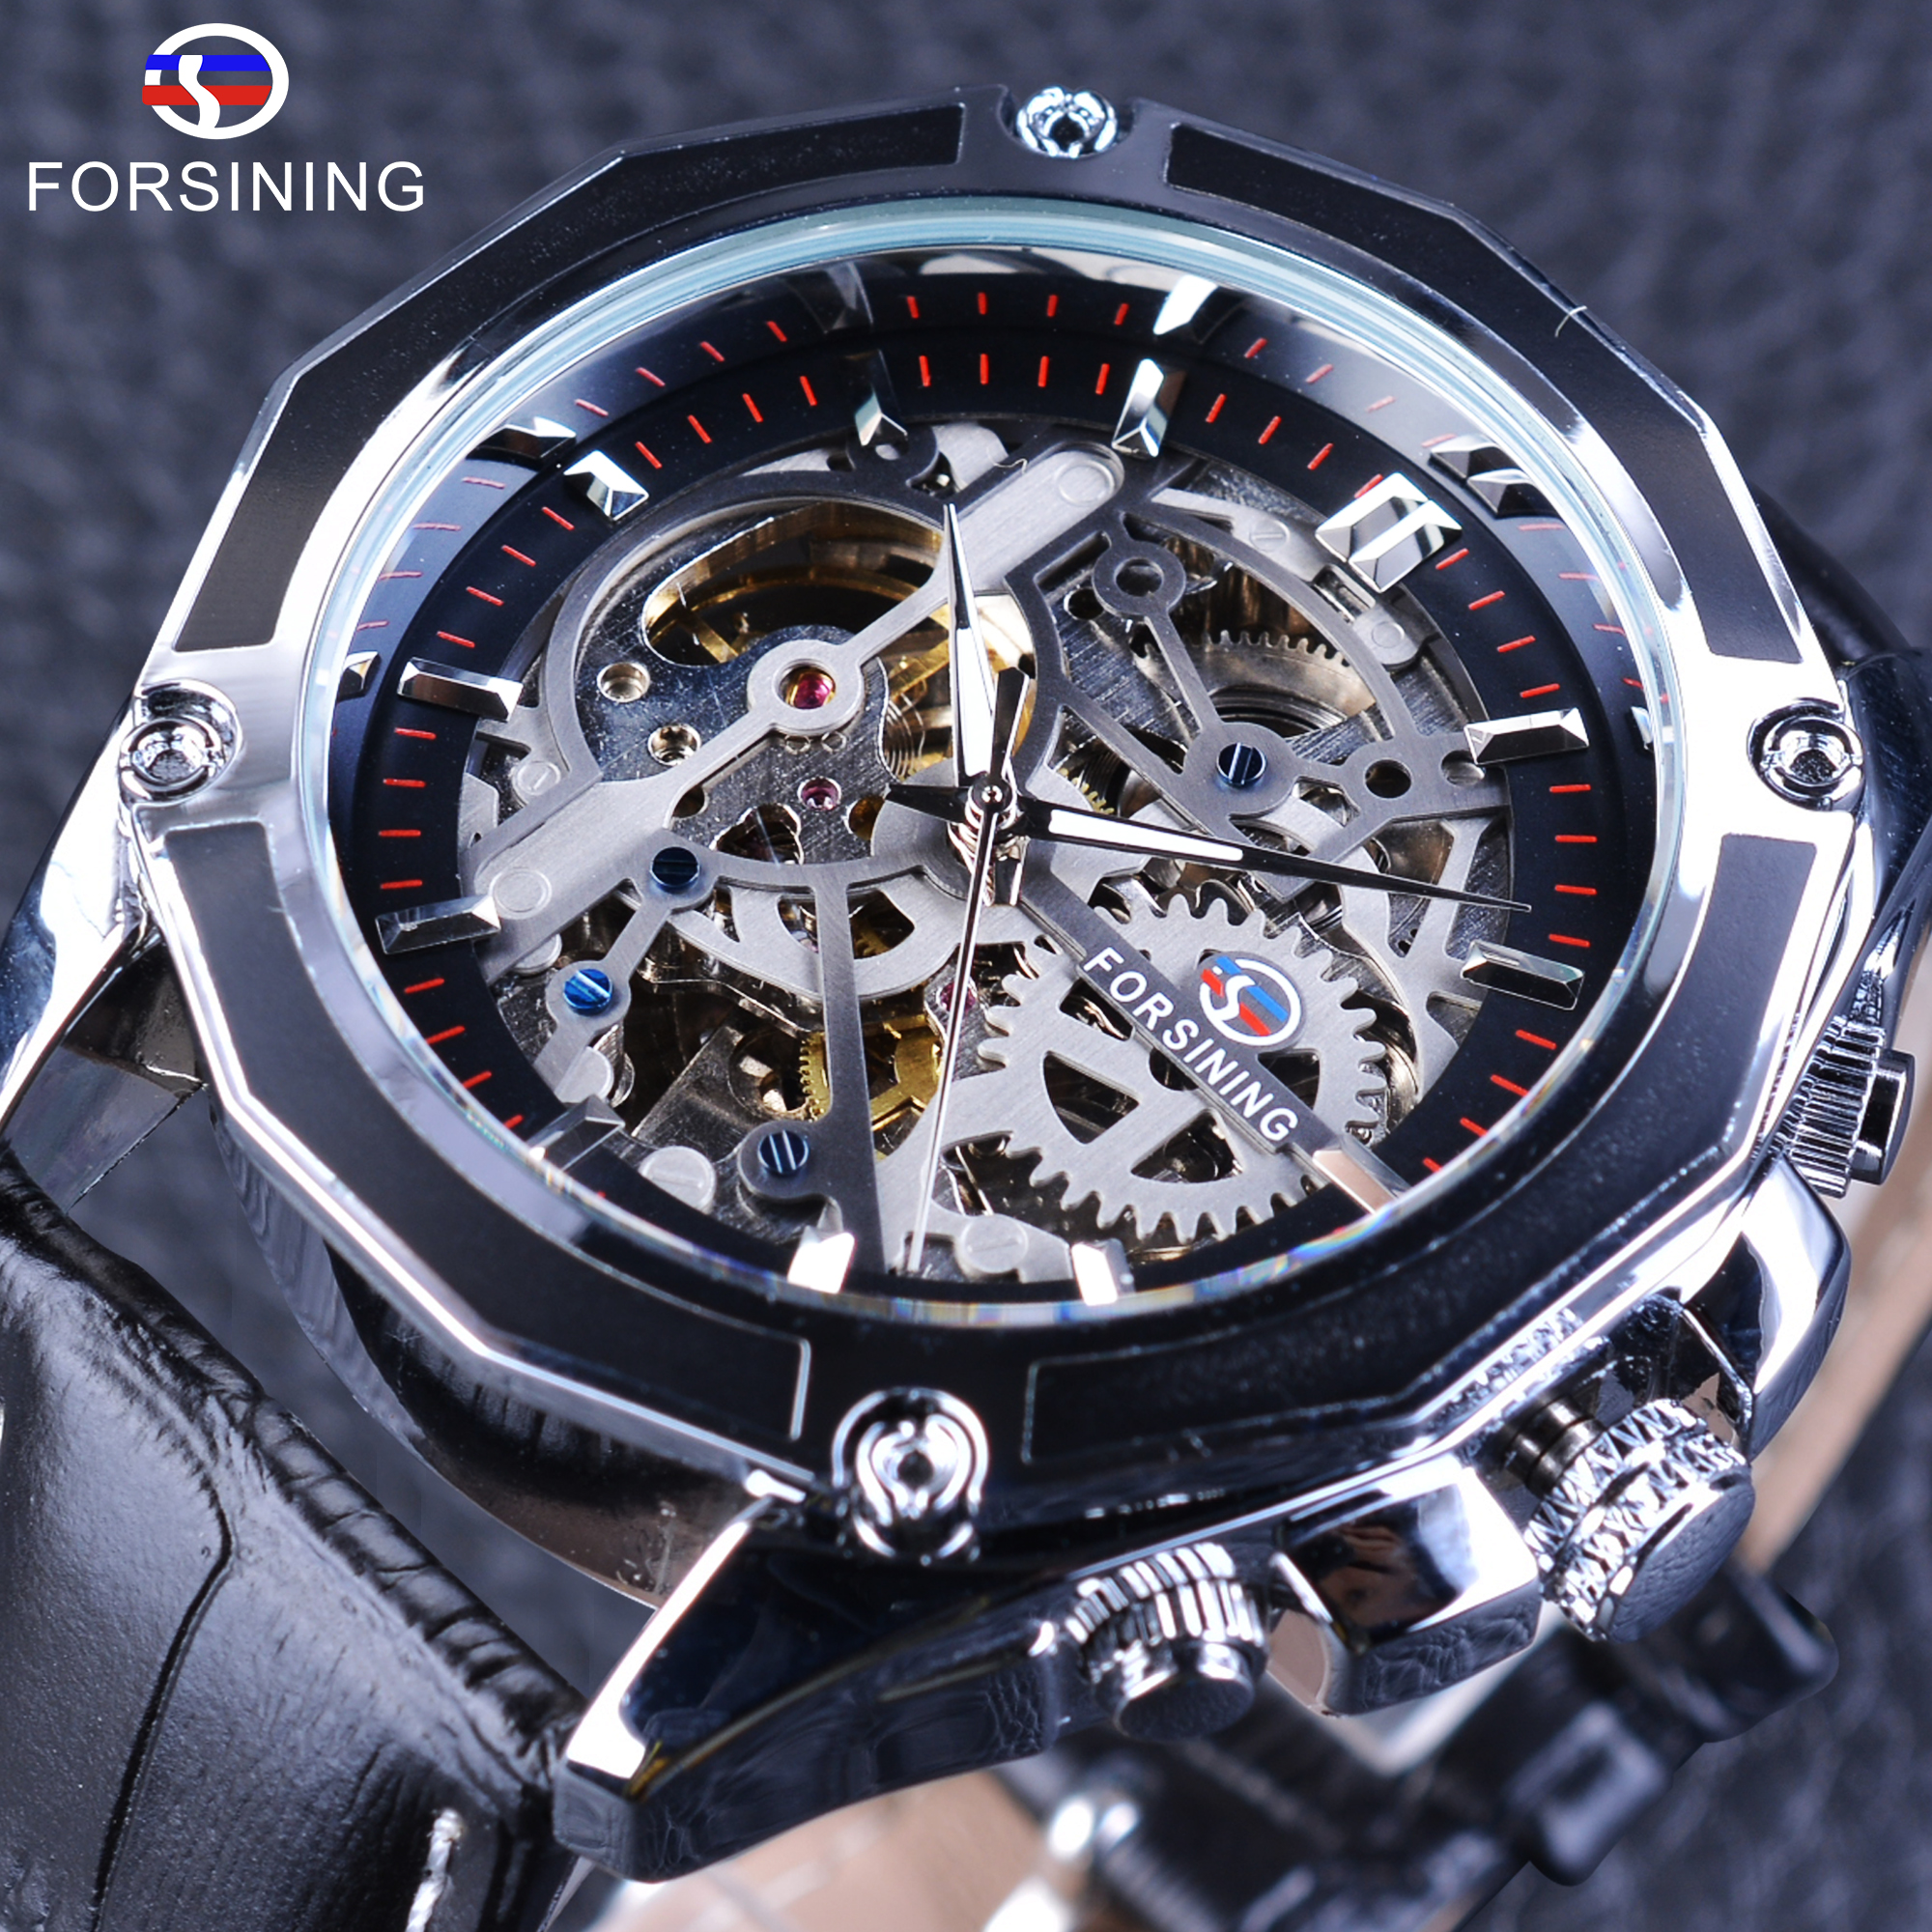 led watch pin silicone watches top men brand fashion military luxury waterproof digital